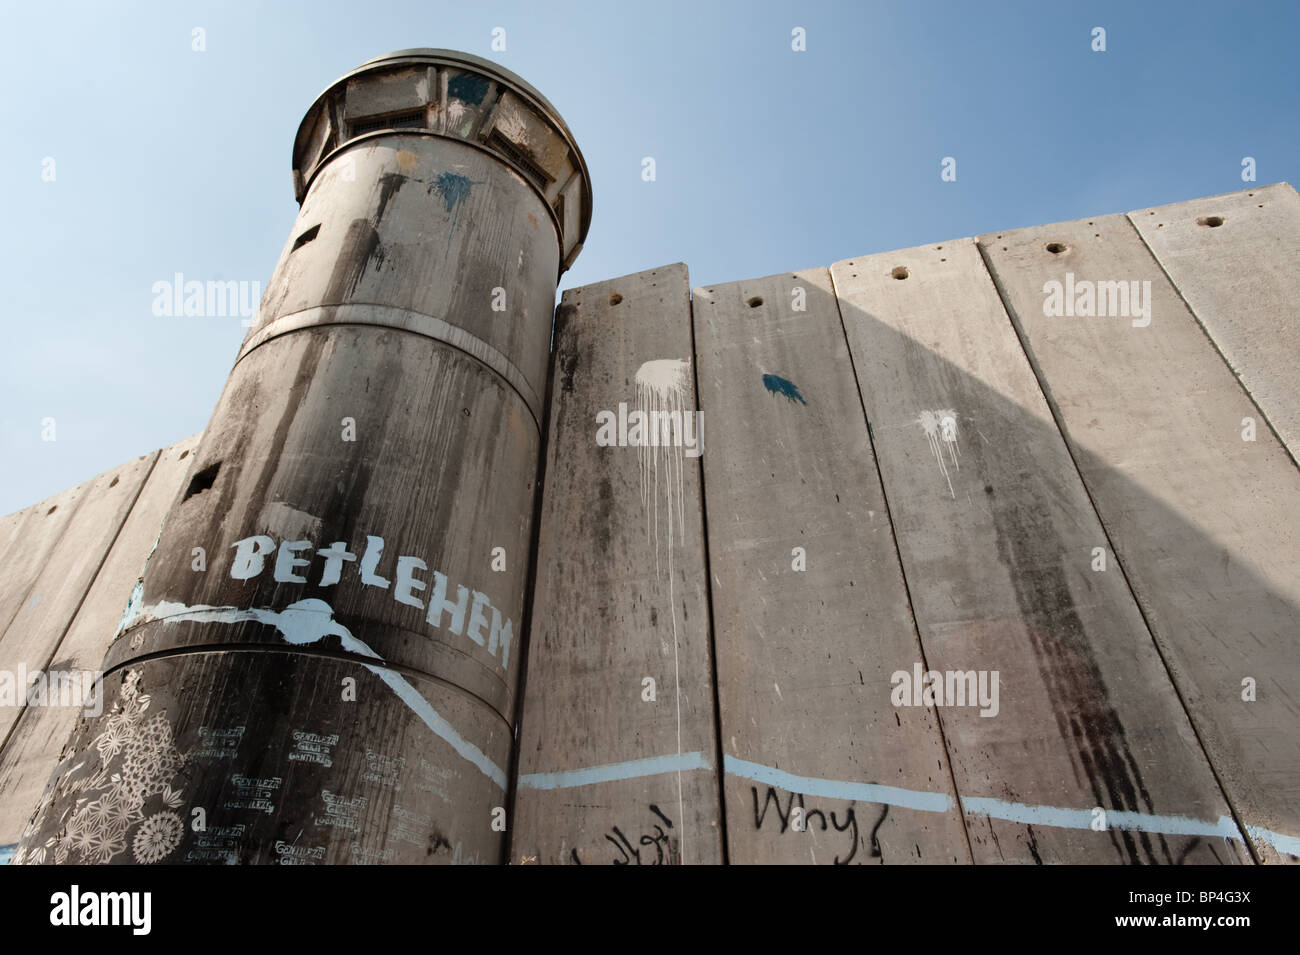 Activist graffiti adorns the Israeli separation wall in the West Bank town of Bethlehem. - Stock Image